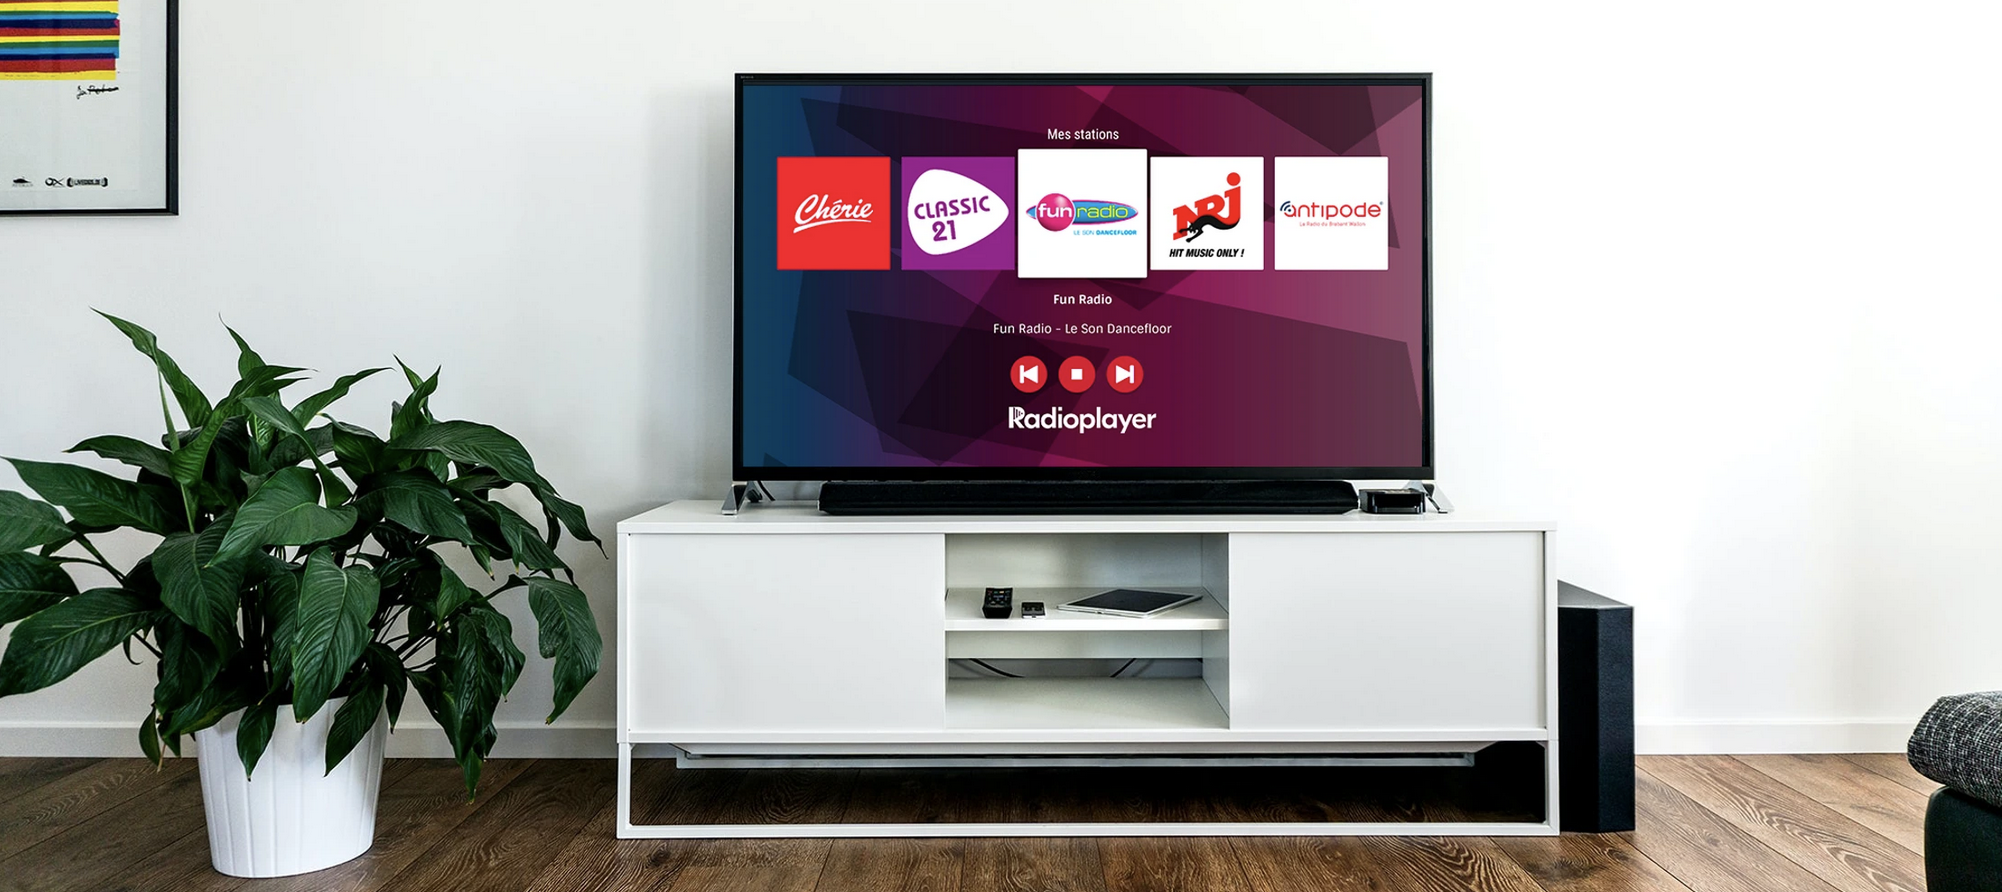 Radioplayer.be disponible sur Android TV